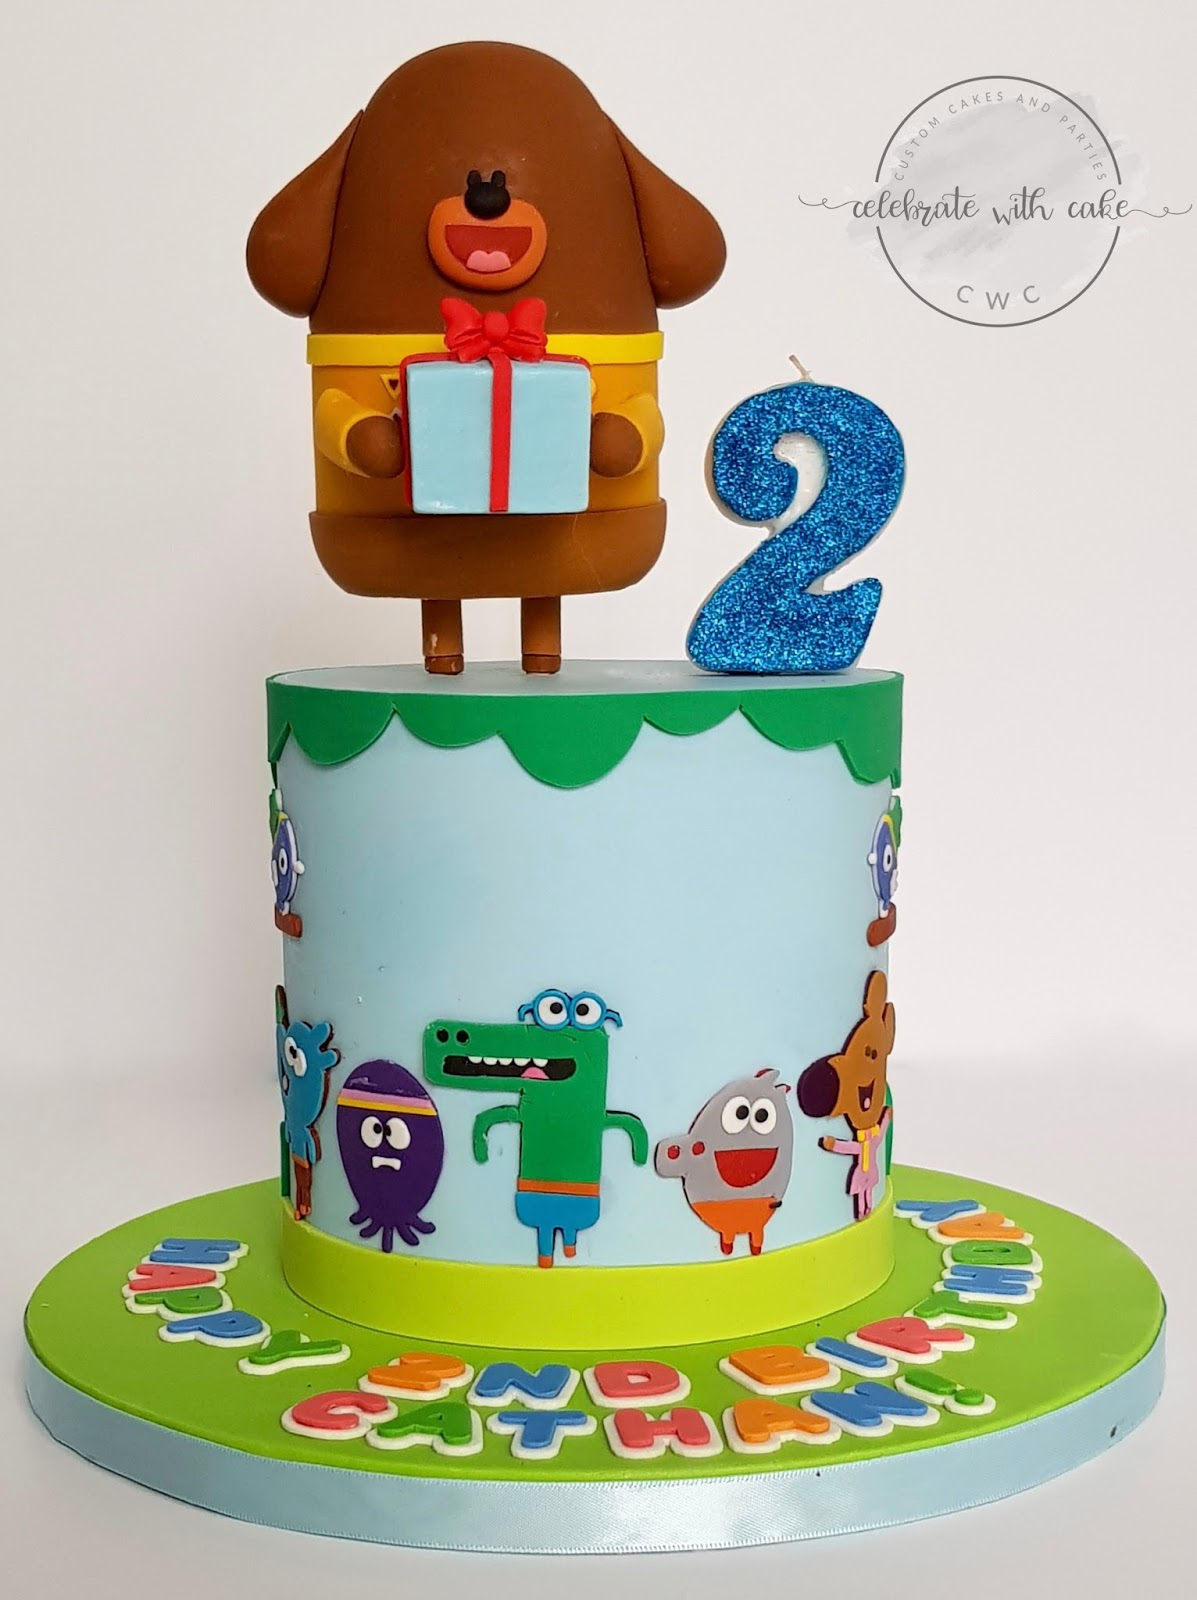 Celebrate With Cake Hey Duggee Single Tier